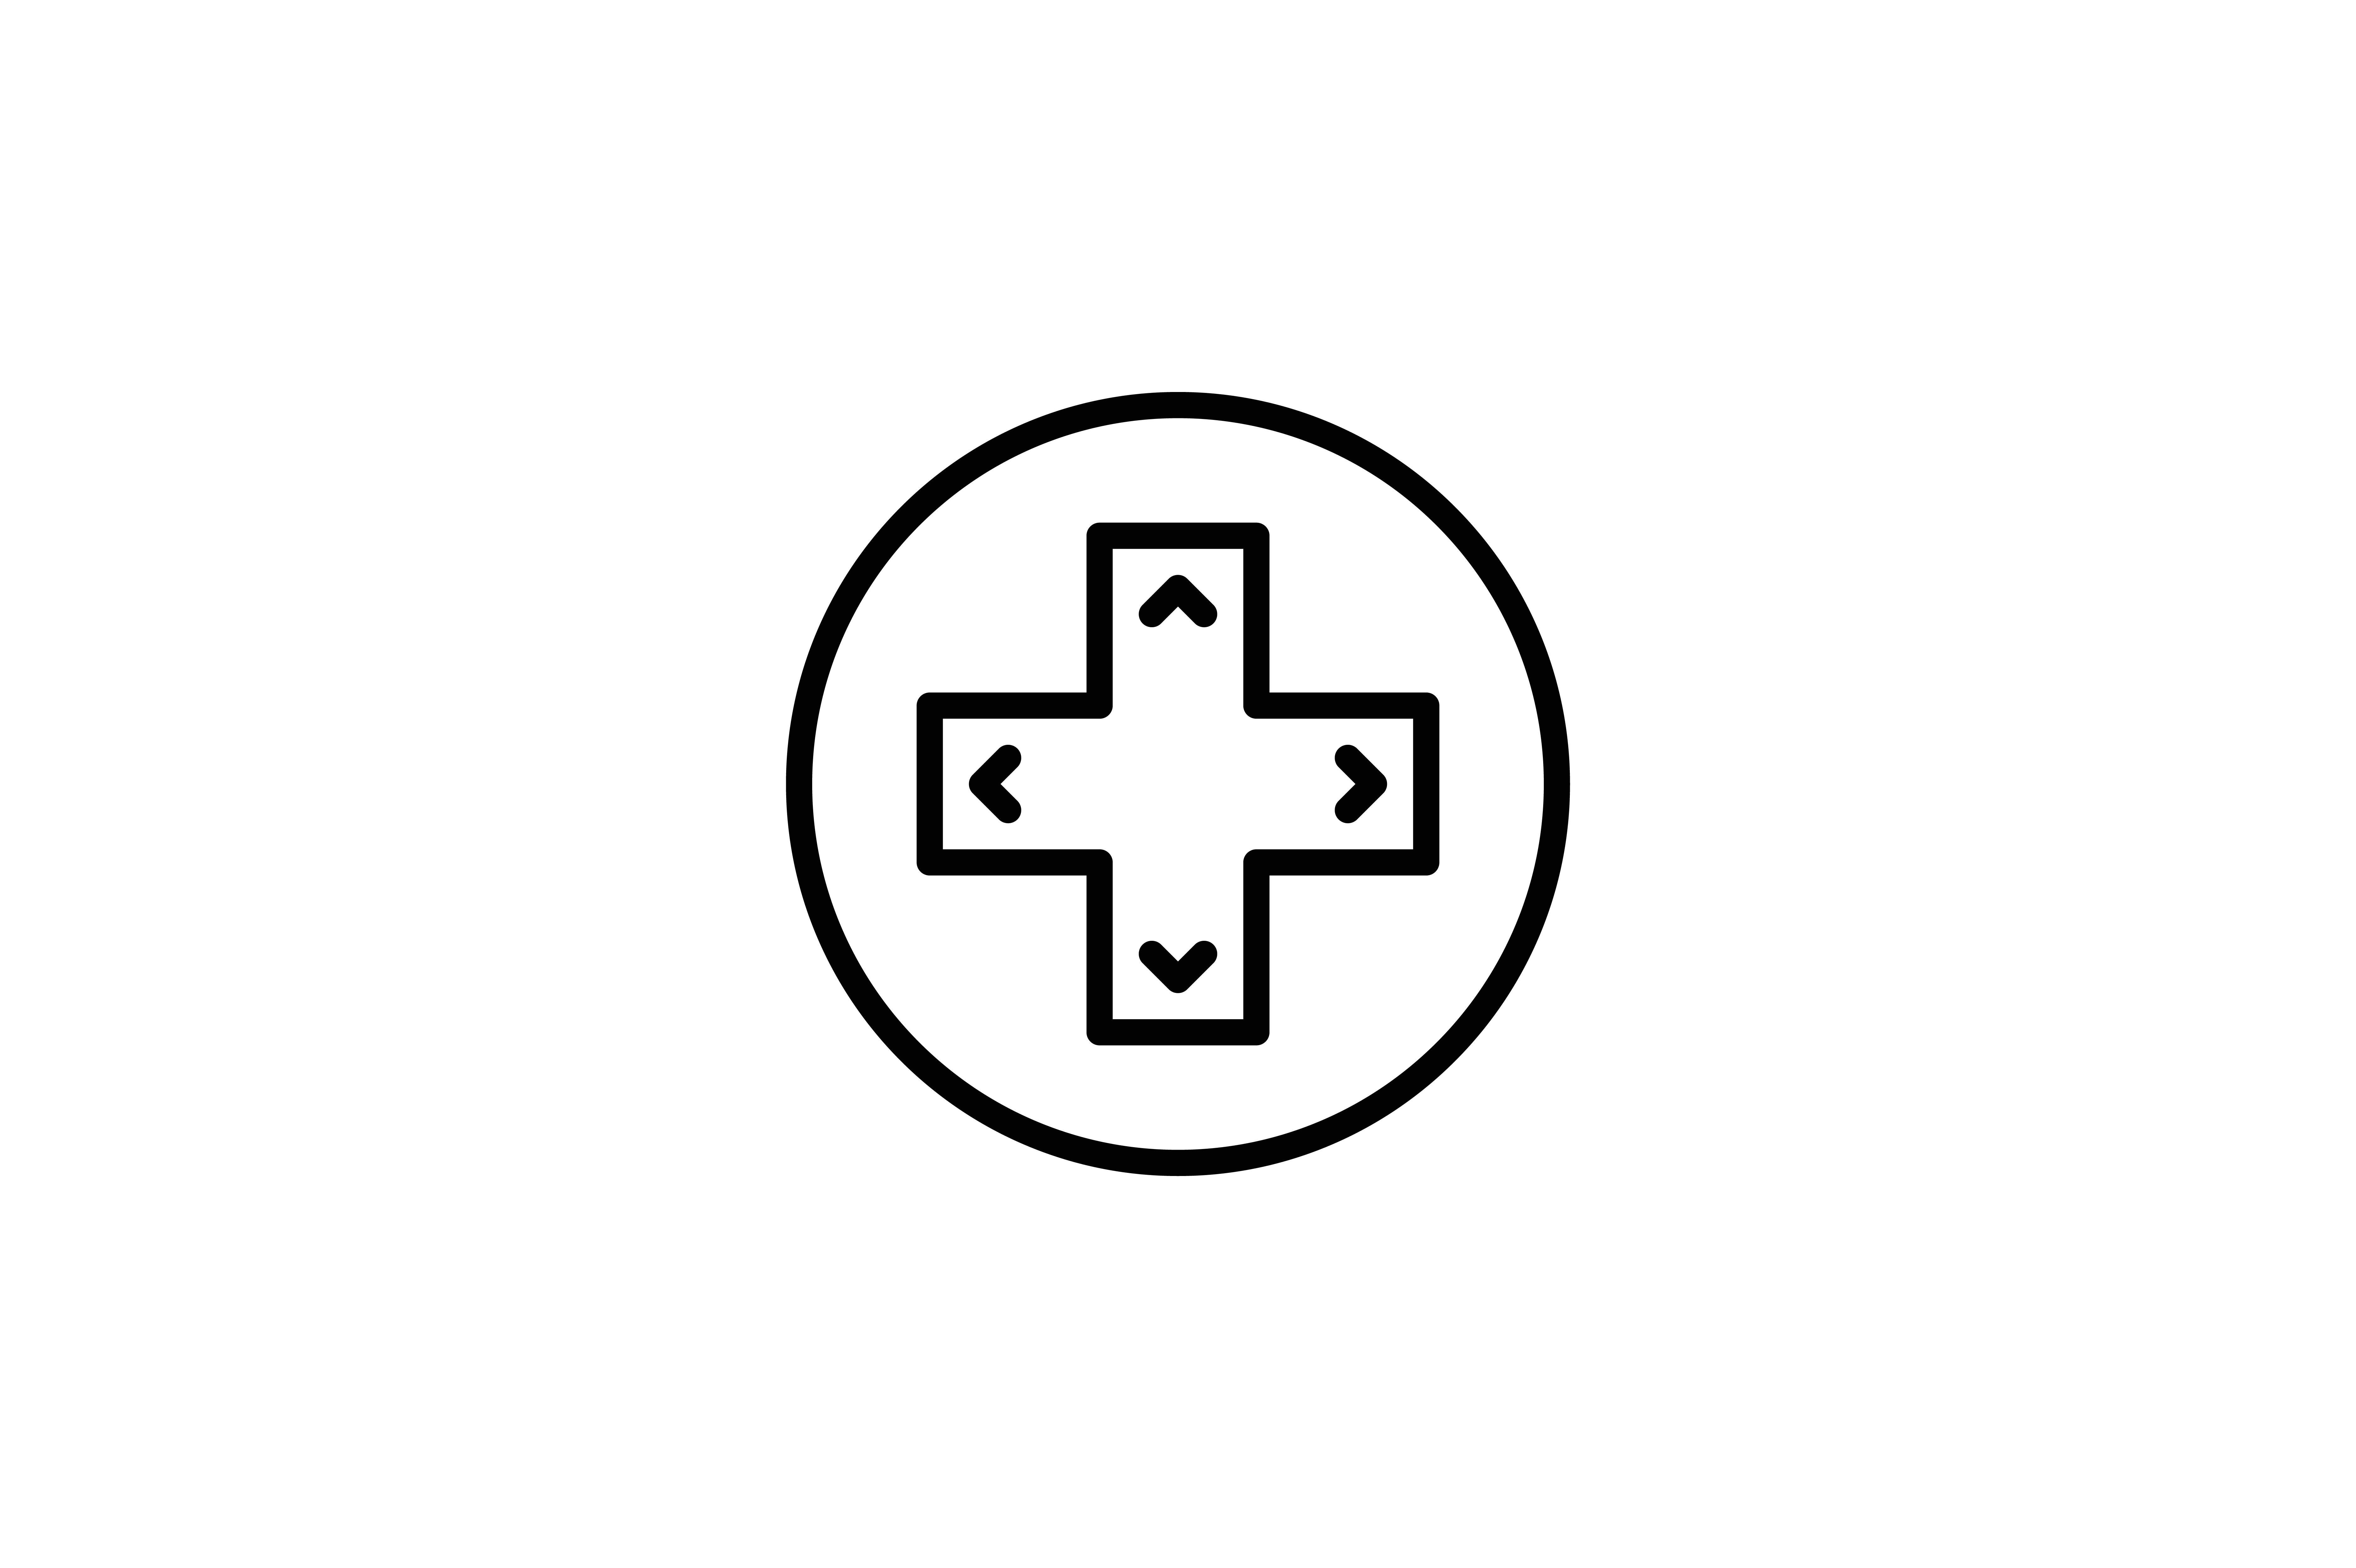 Download Free Game Arcade Icon Graphic By Atastudio 2 Creative Fabrica for Cricut Explore, Silhouette and other cutting machines.